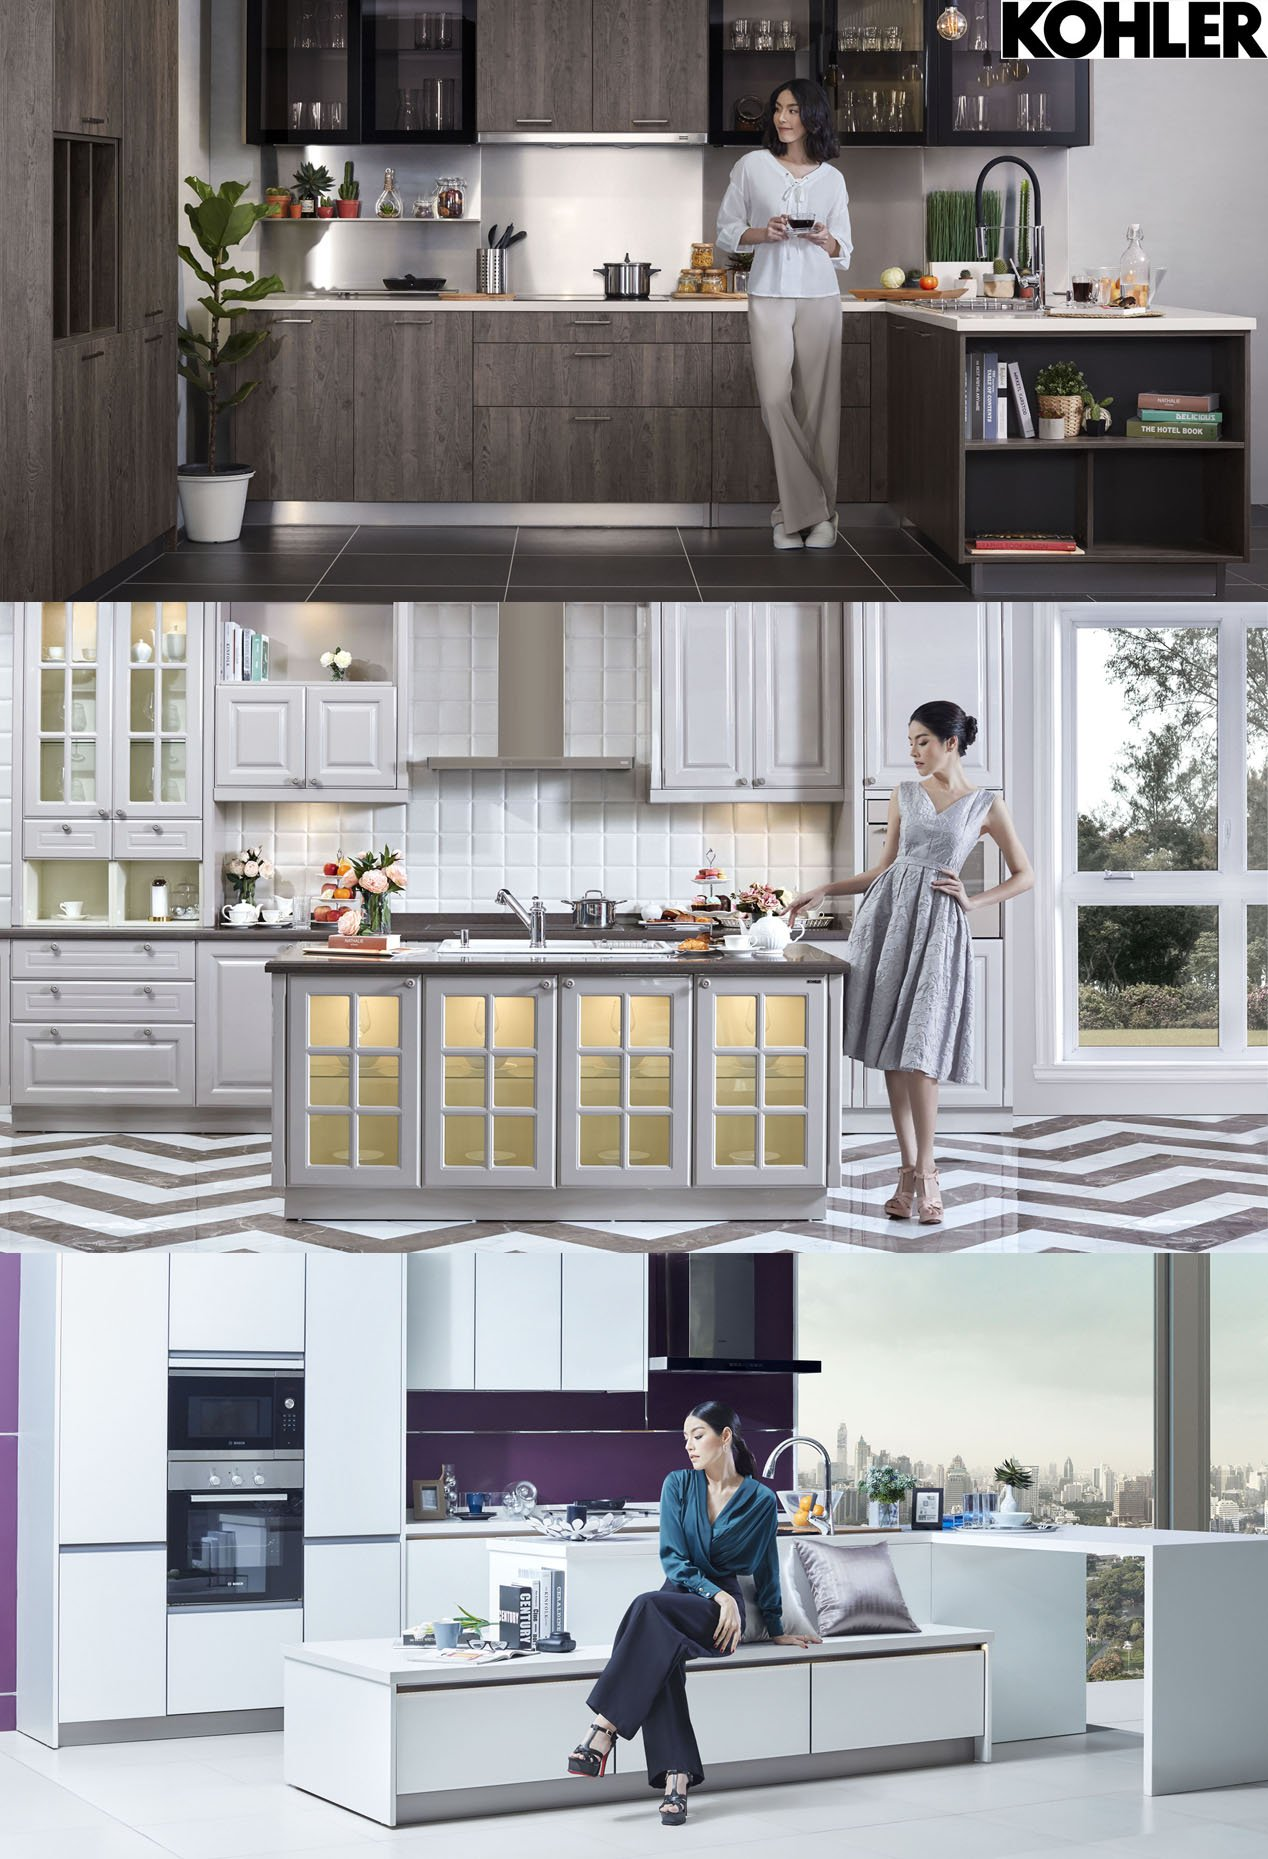 KEEP COOKING, AND CHILL OUT with KOHLER Kitchens. เมื่อครัวไม่ใช่แค่พื้นที่สำหรับทำอาหารเท่านั้น